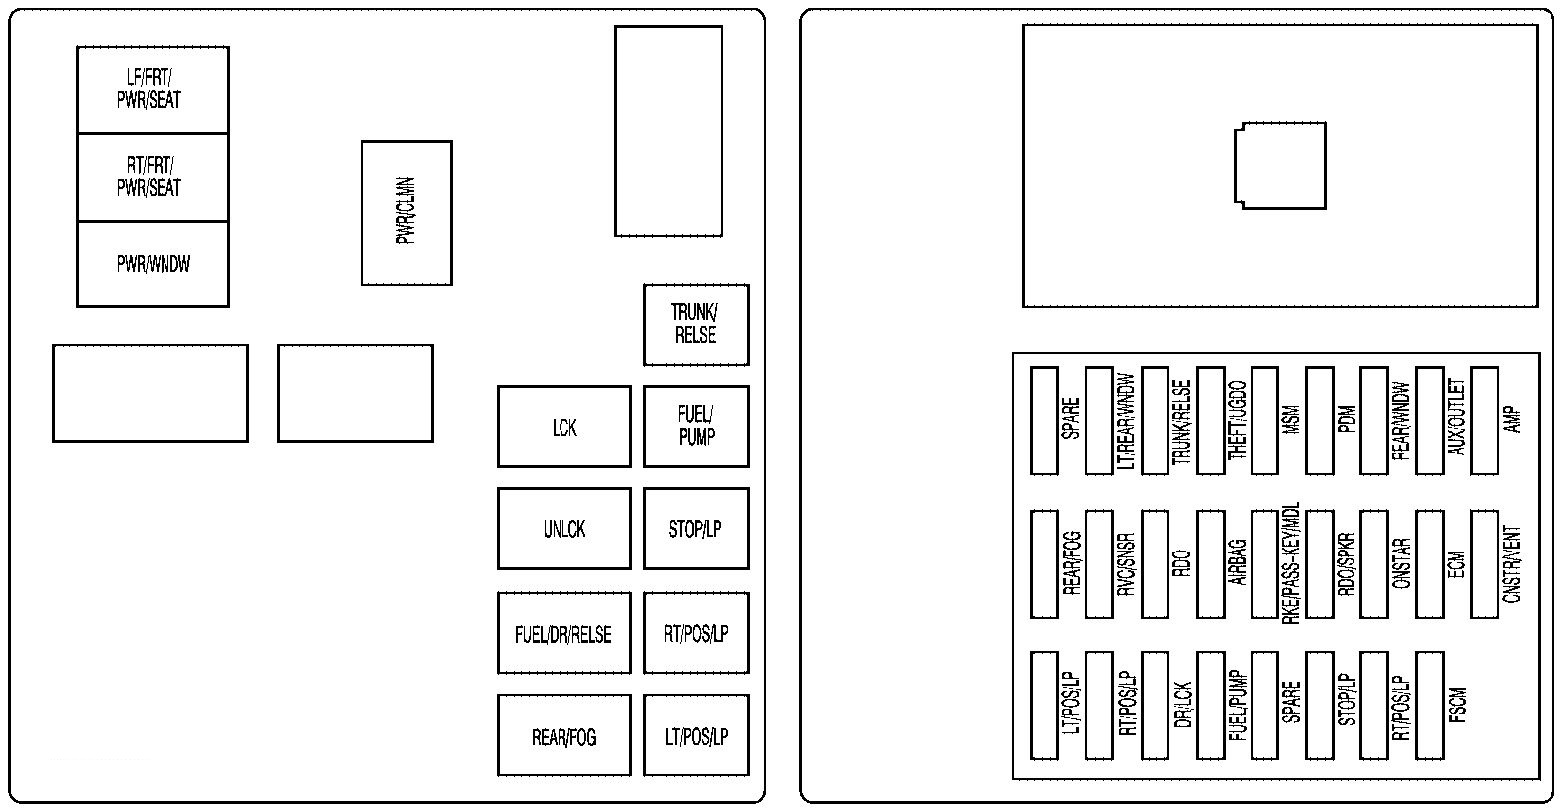 cadillac cts awd diagram 24 wiring diagram images 2008 cadillac cts fuse panel 2008 cadillac cts fuse panel